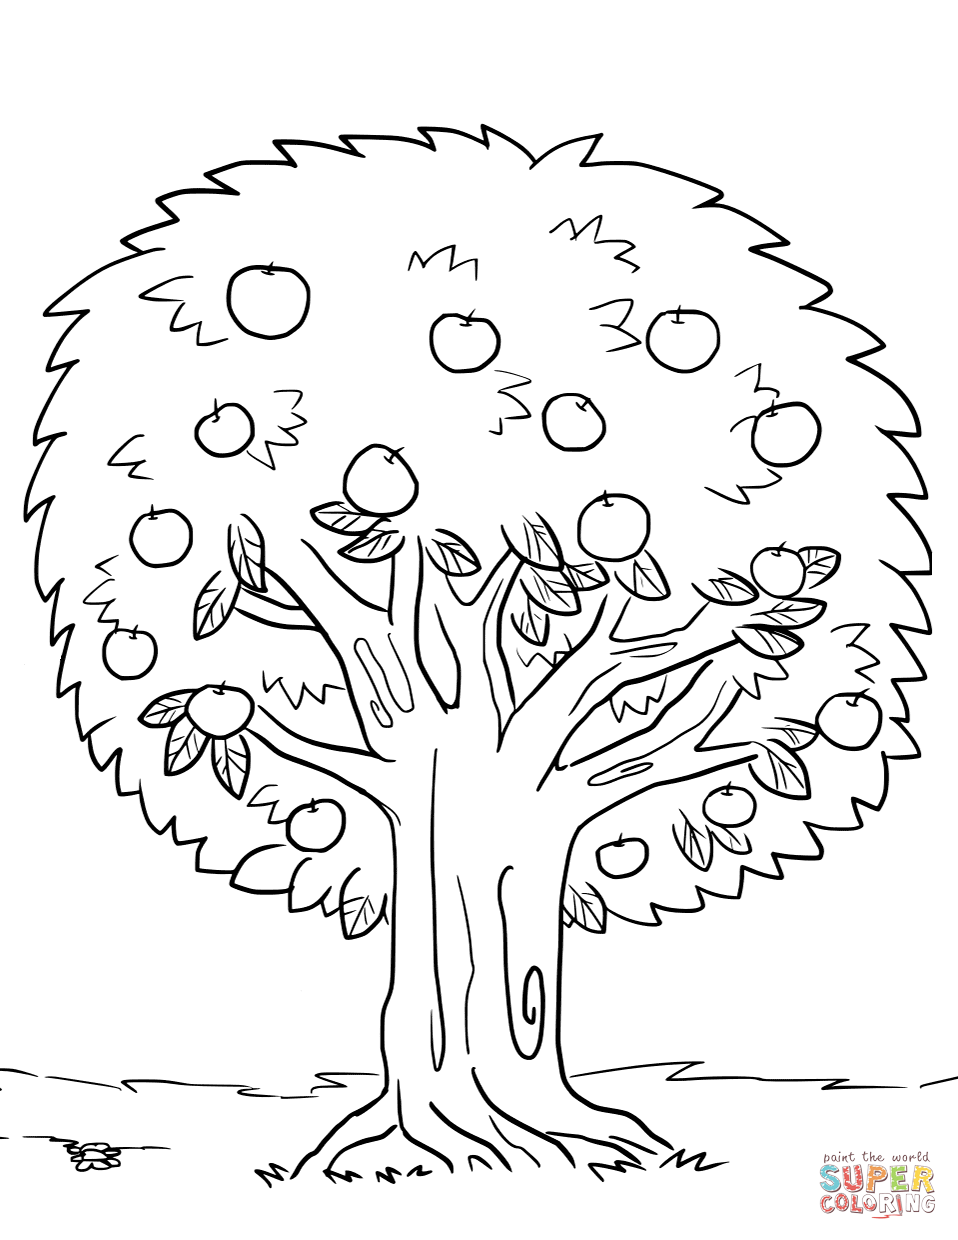 Coloring Pages Trees Free Coloring Pages Download | Xsibe christmas ...